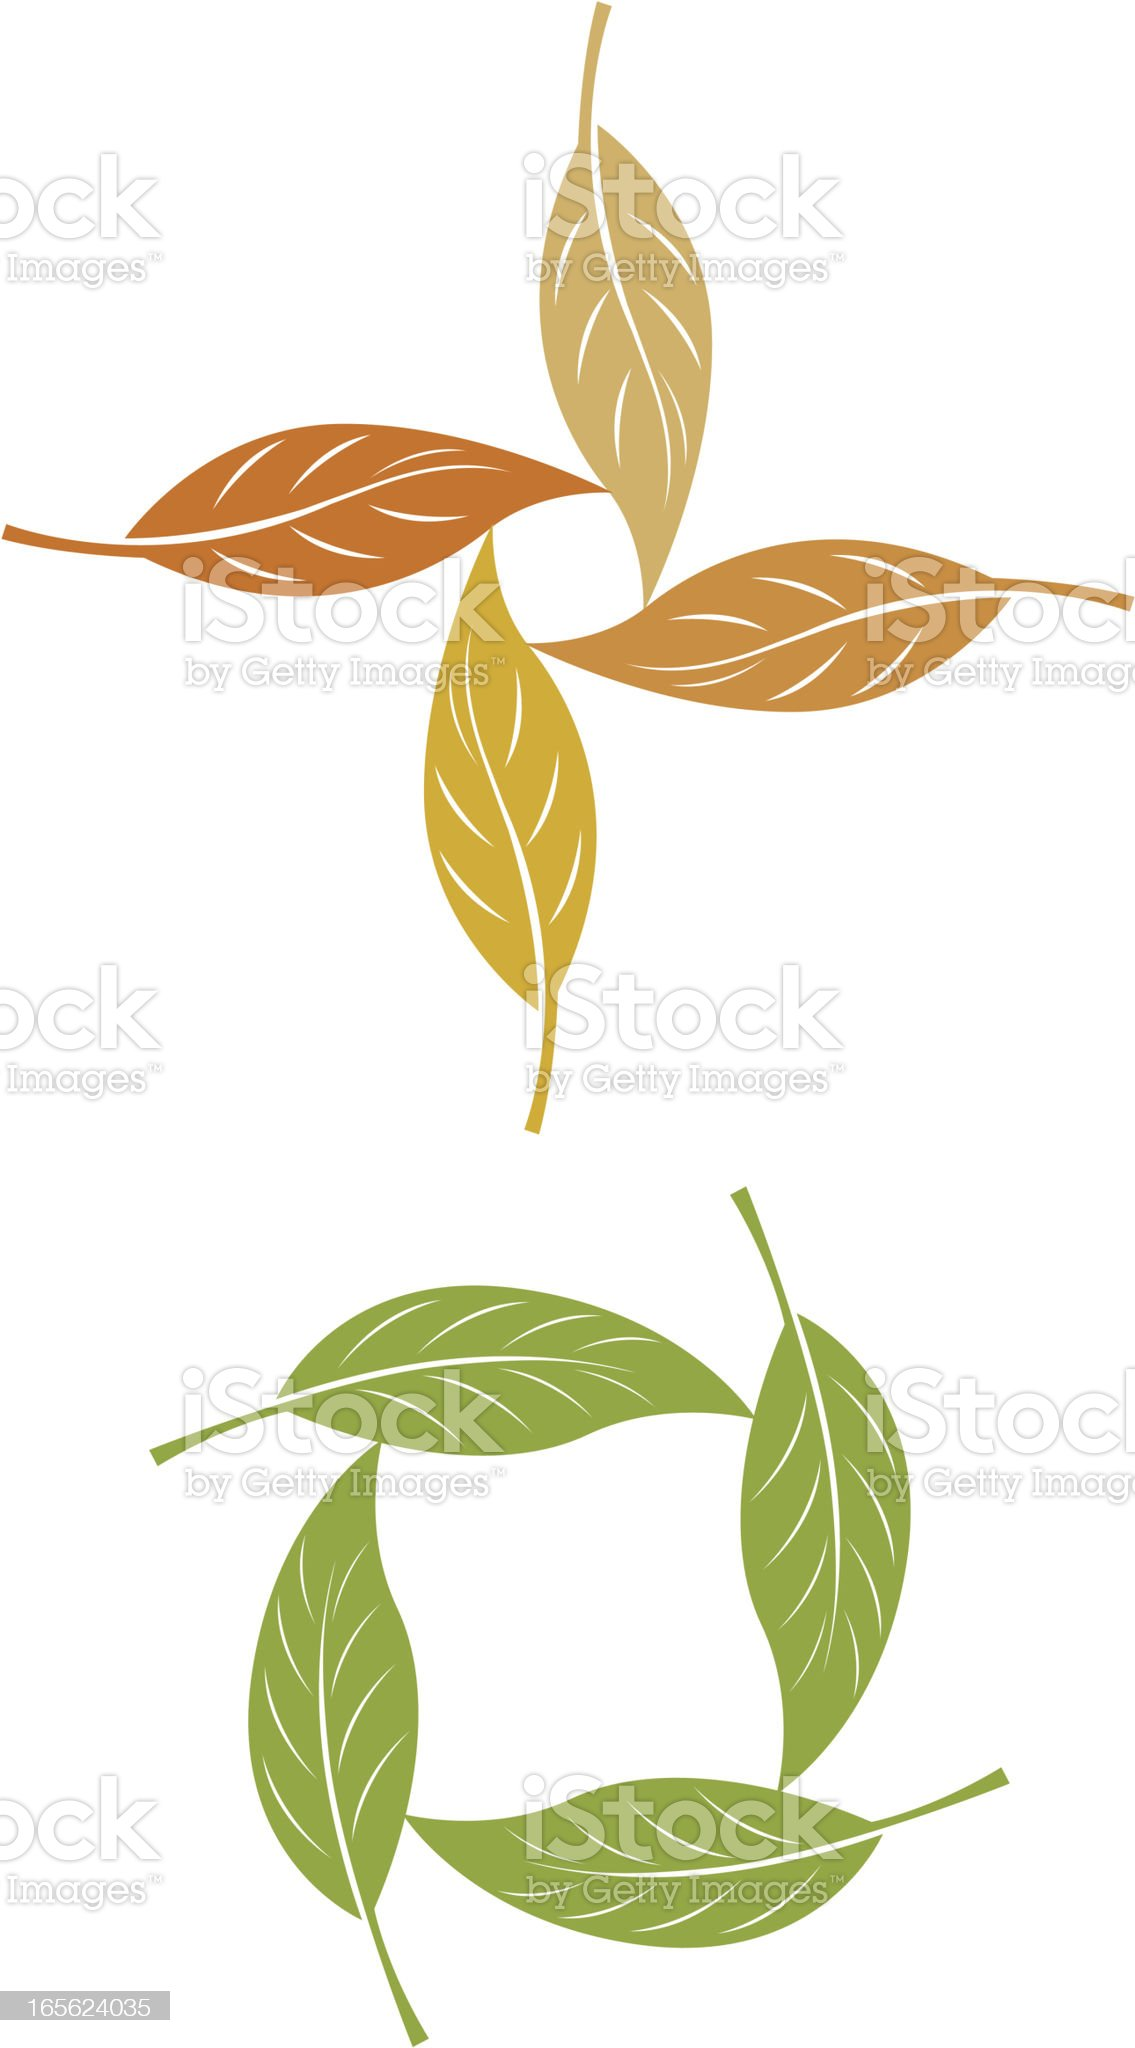 Leaves in a circle royalty-free stock vector art